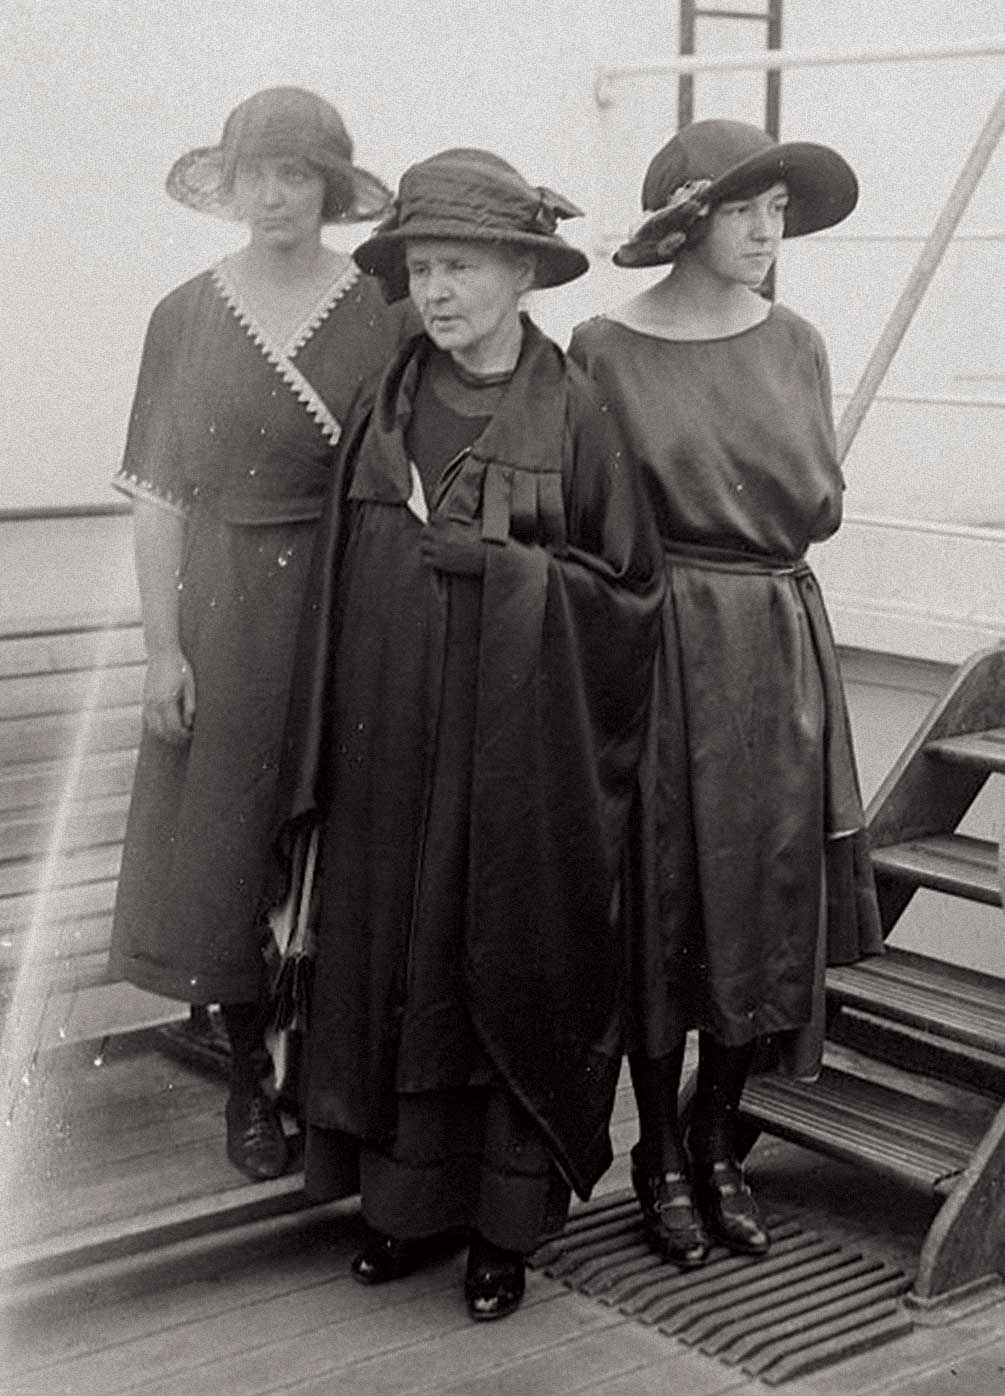 Curie, who crossed the Atlantic in 1921 with daughters Eve and Irène, was a pioneer in combining motherhood with a full-time career in science. Photo Courtesy of Library of Congress